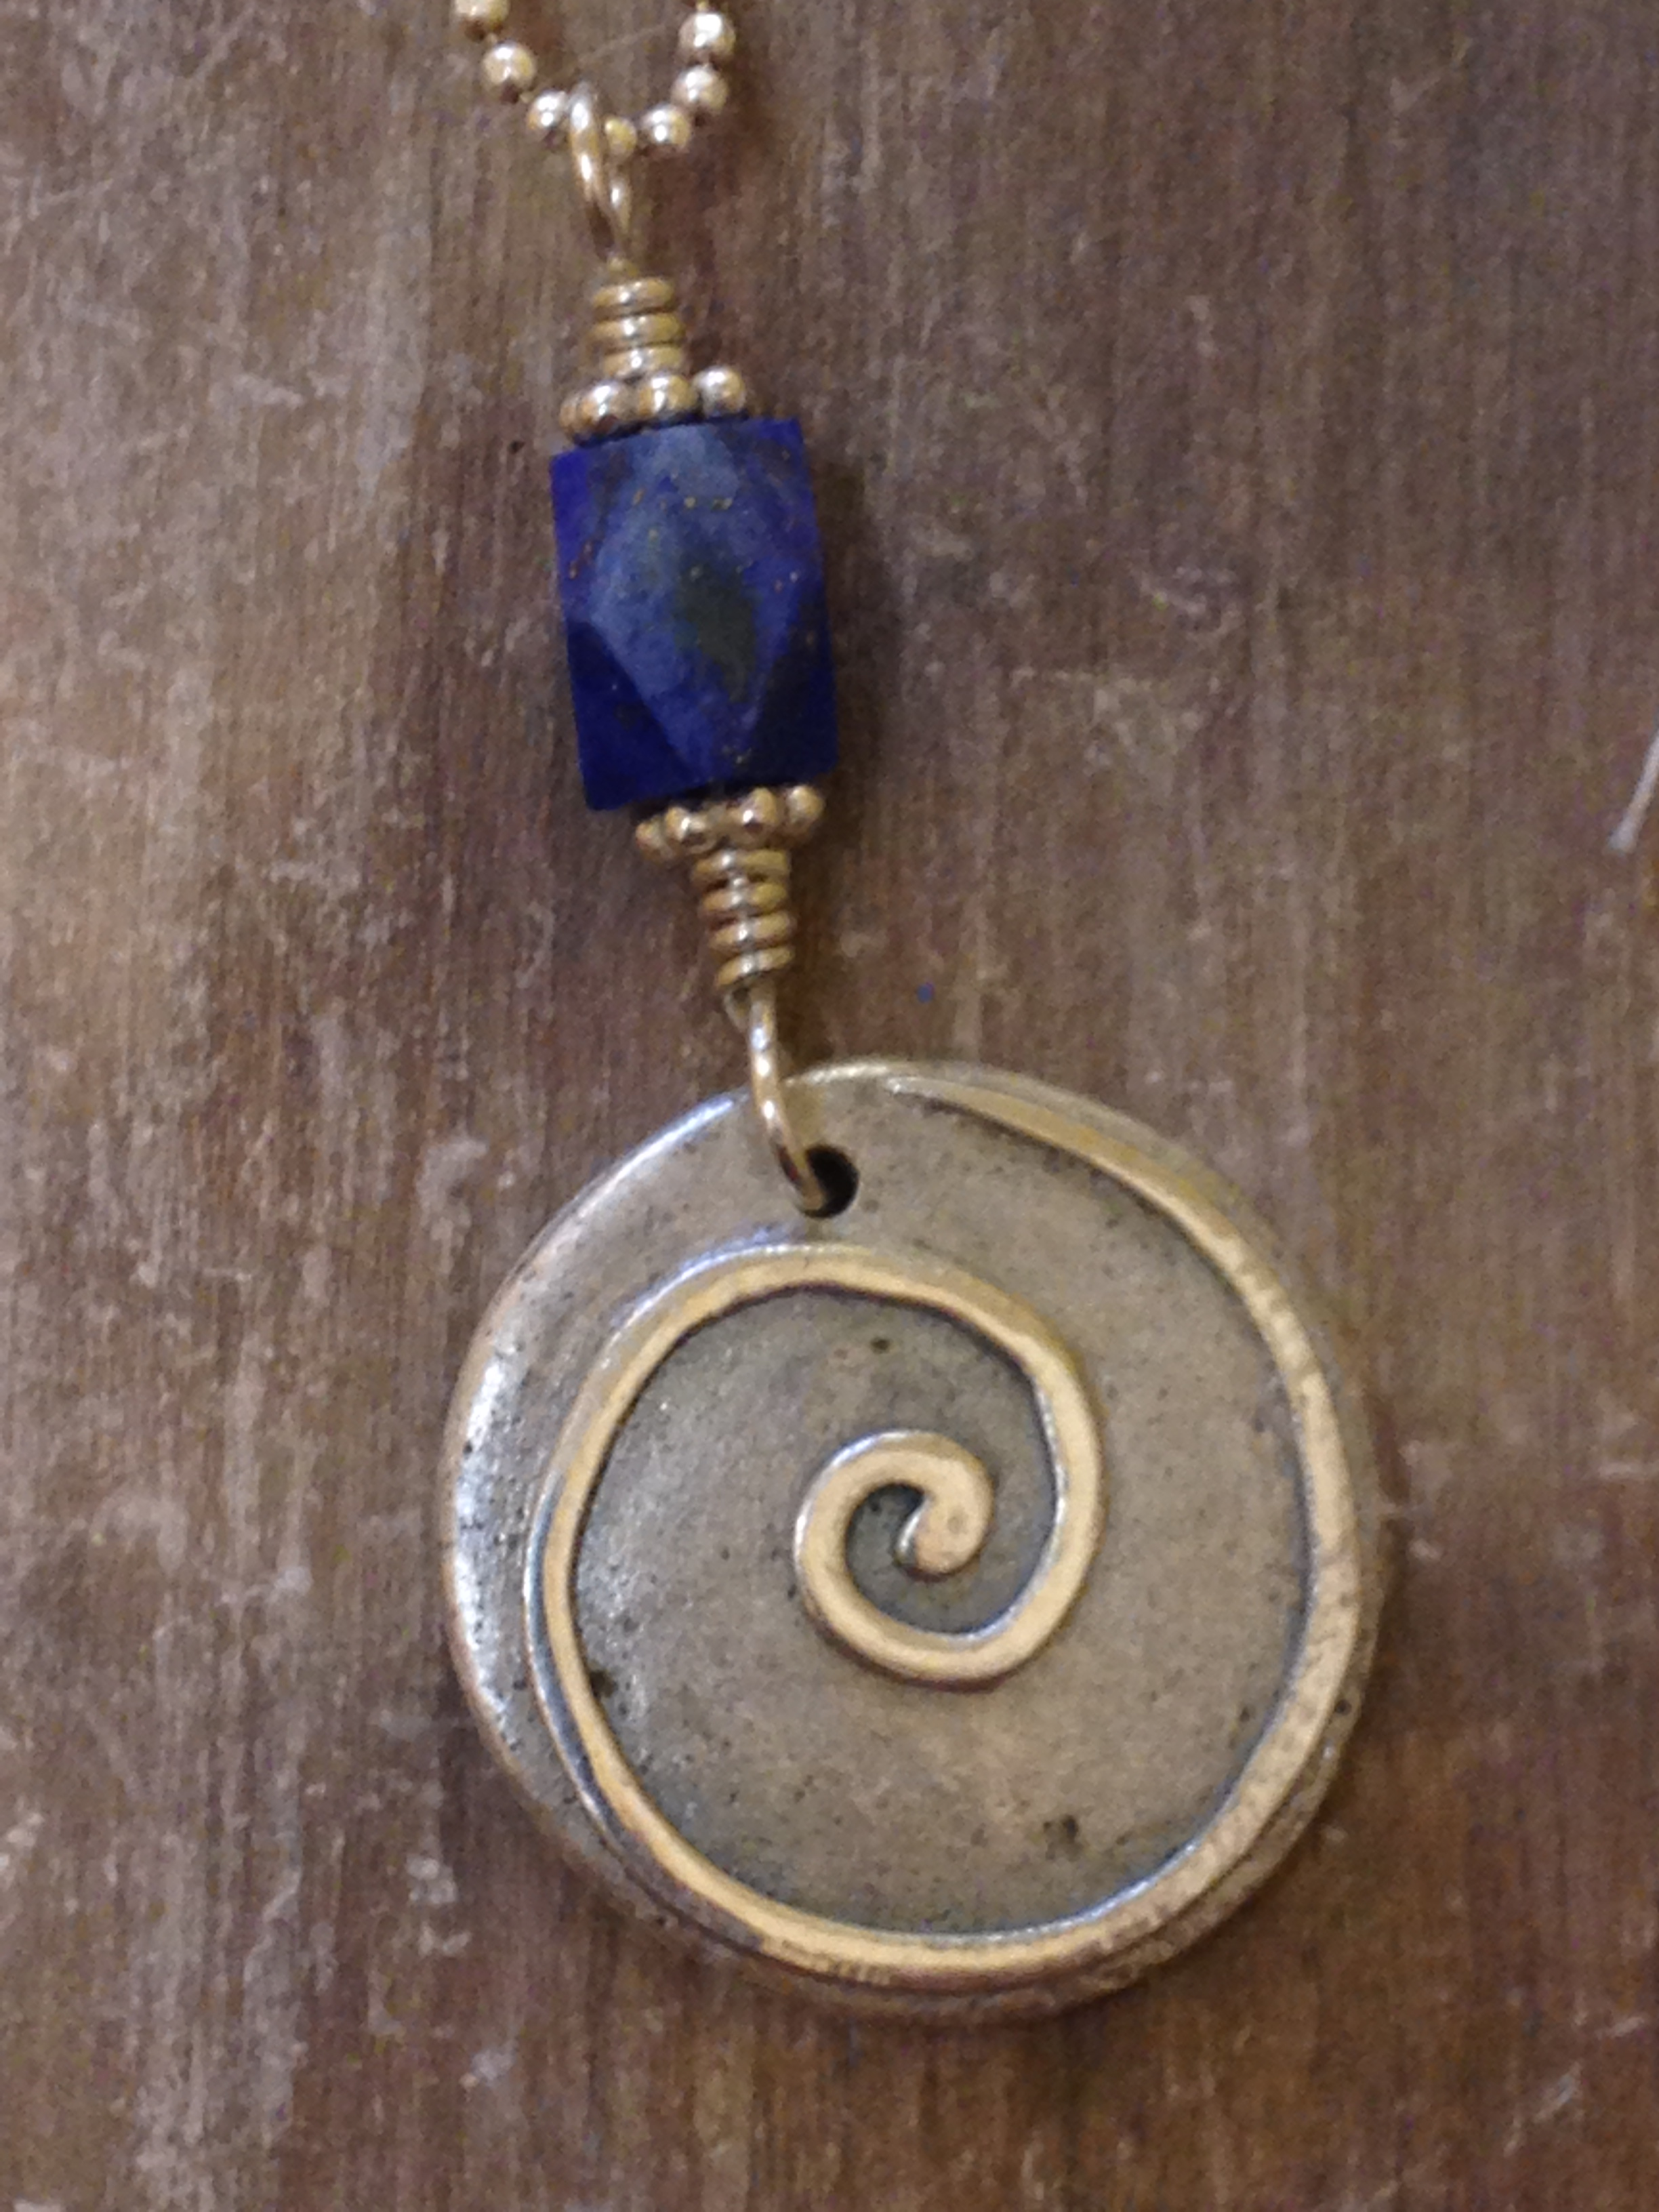 The original Circle of Life pendant with spiral and lapis lazuli bead. Note the organic texture the ash creates in the silver.